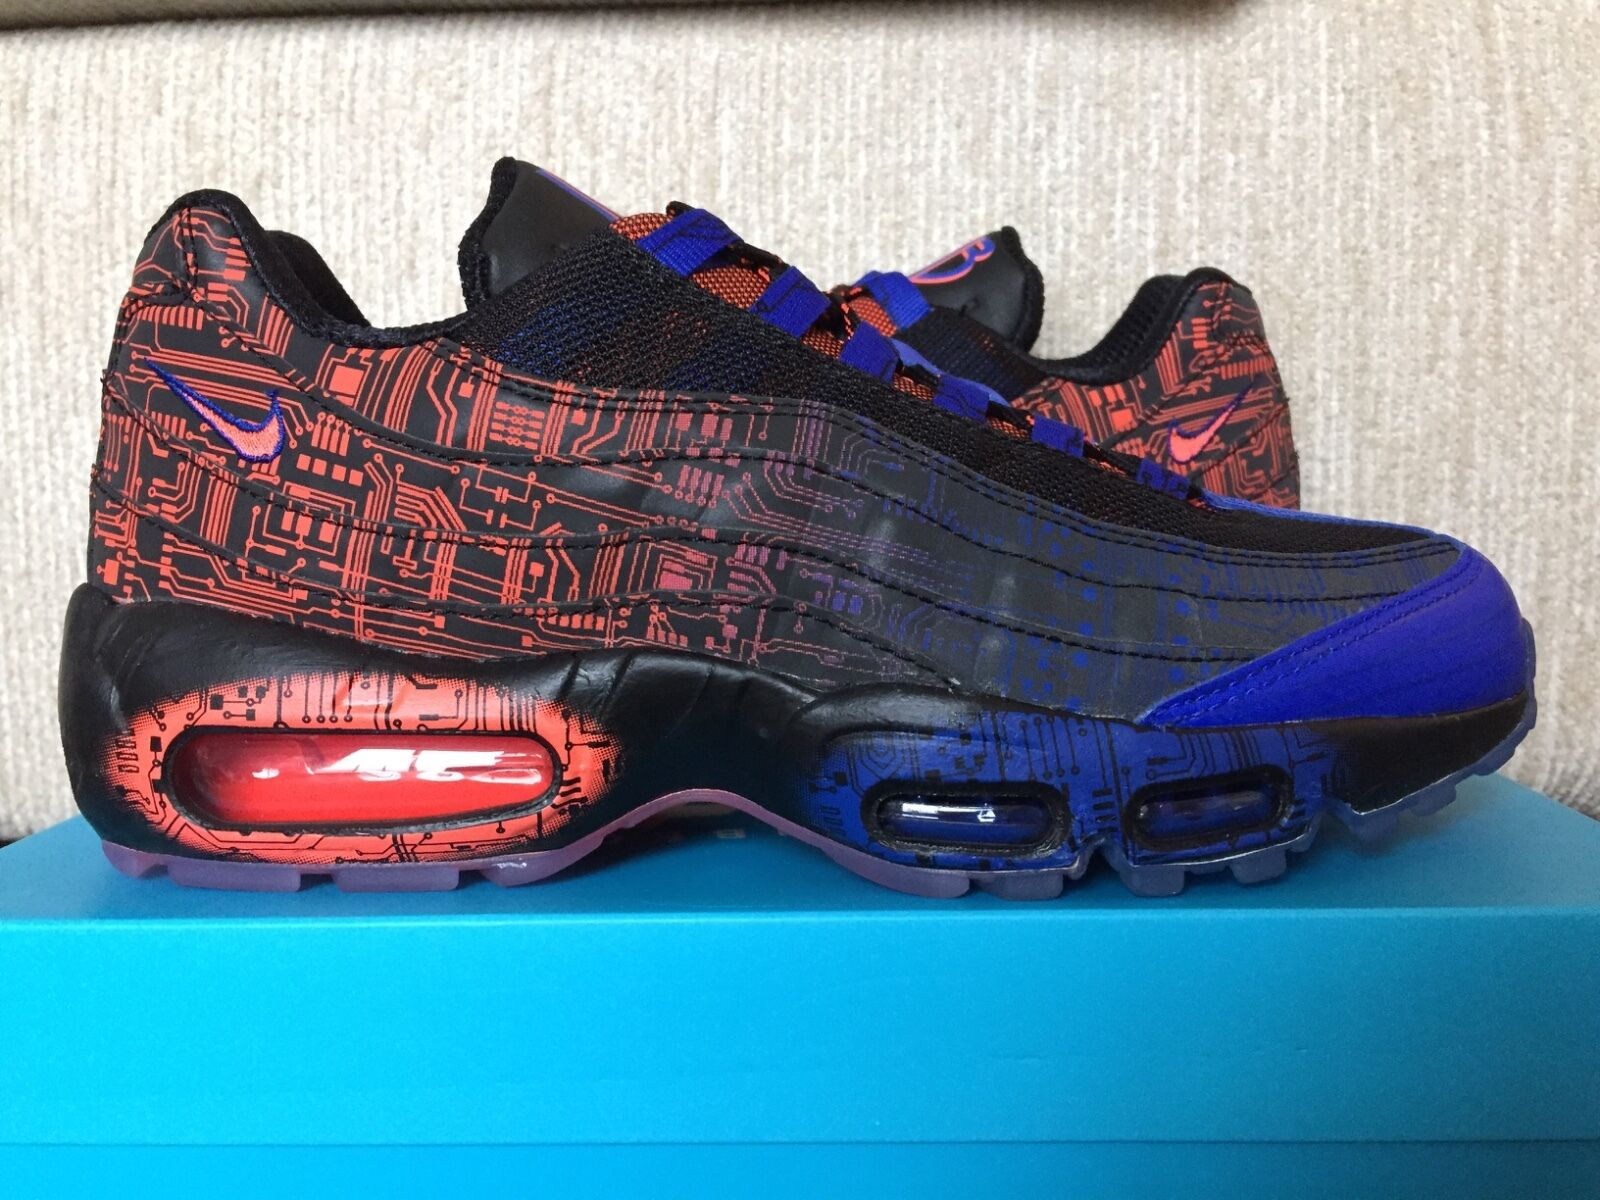 Nike Air Max 95 DB Doernbecher MEN'S & GS: Comfortable Wild casual shoes